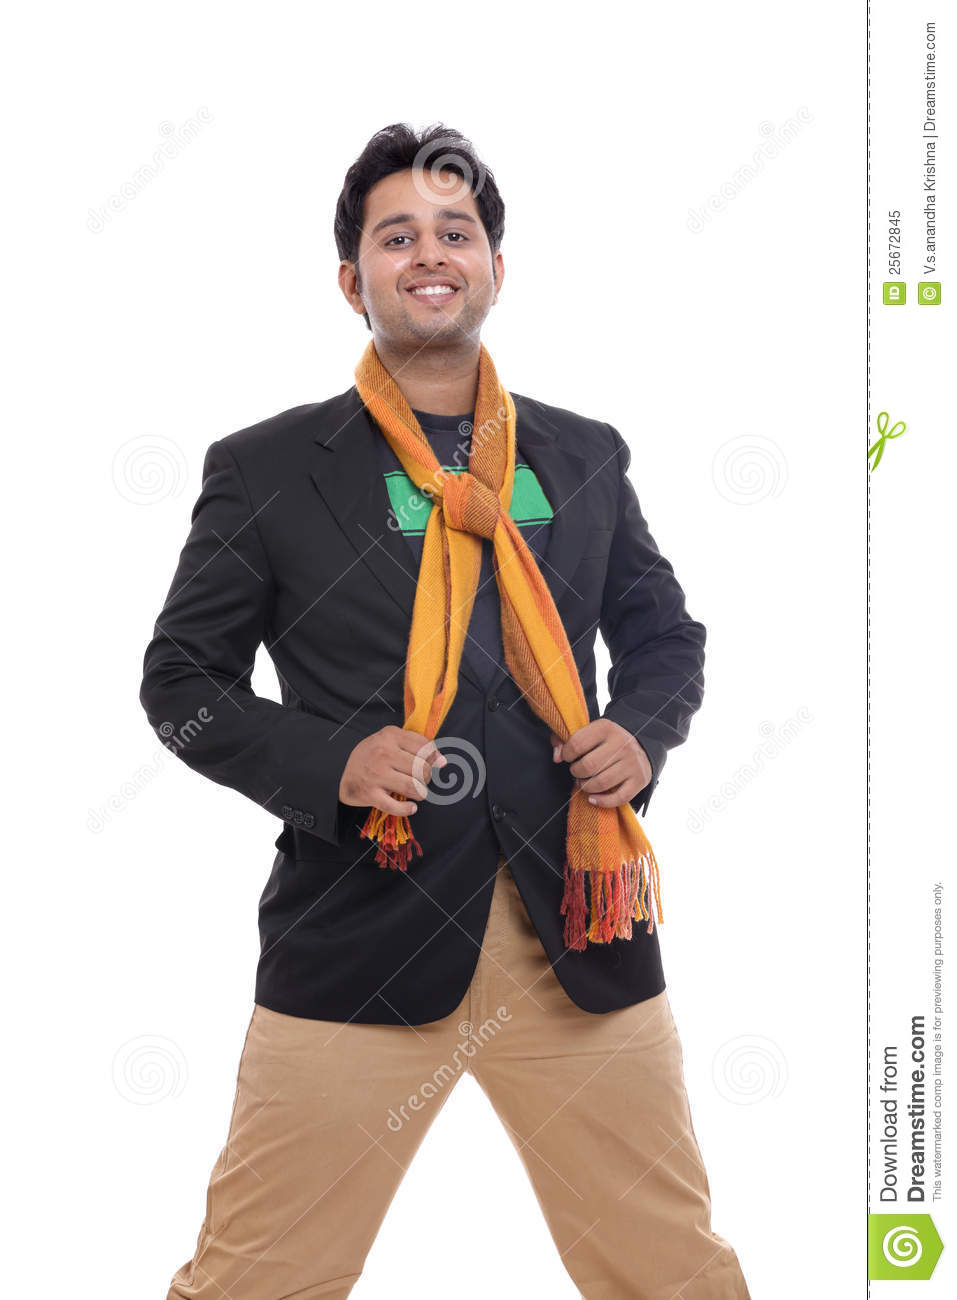 Smart Indian Young Man Smiling Royalty Free Stock Photo ...